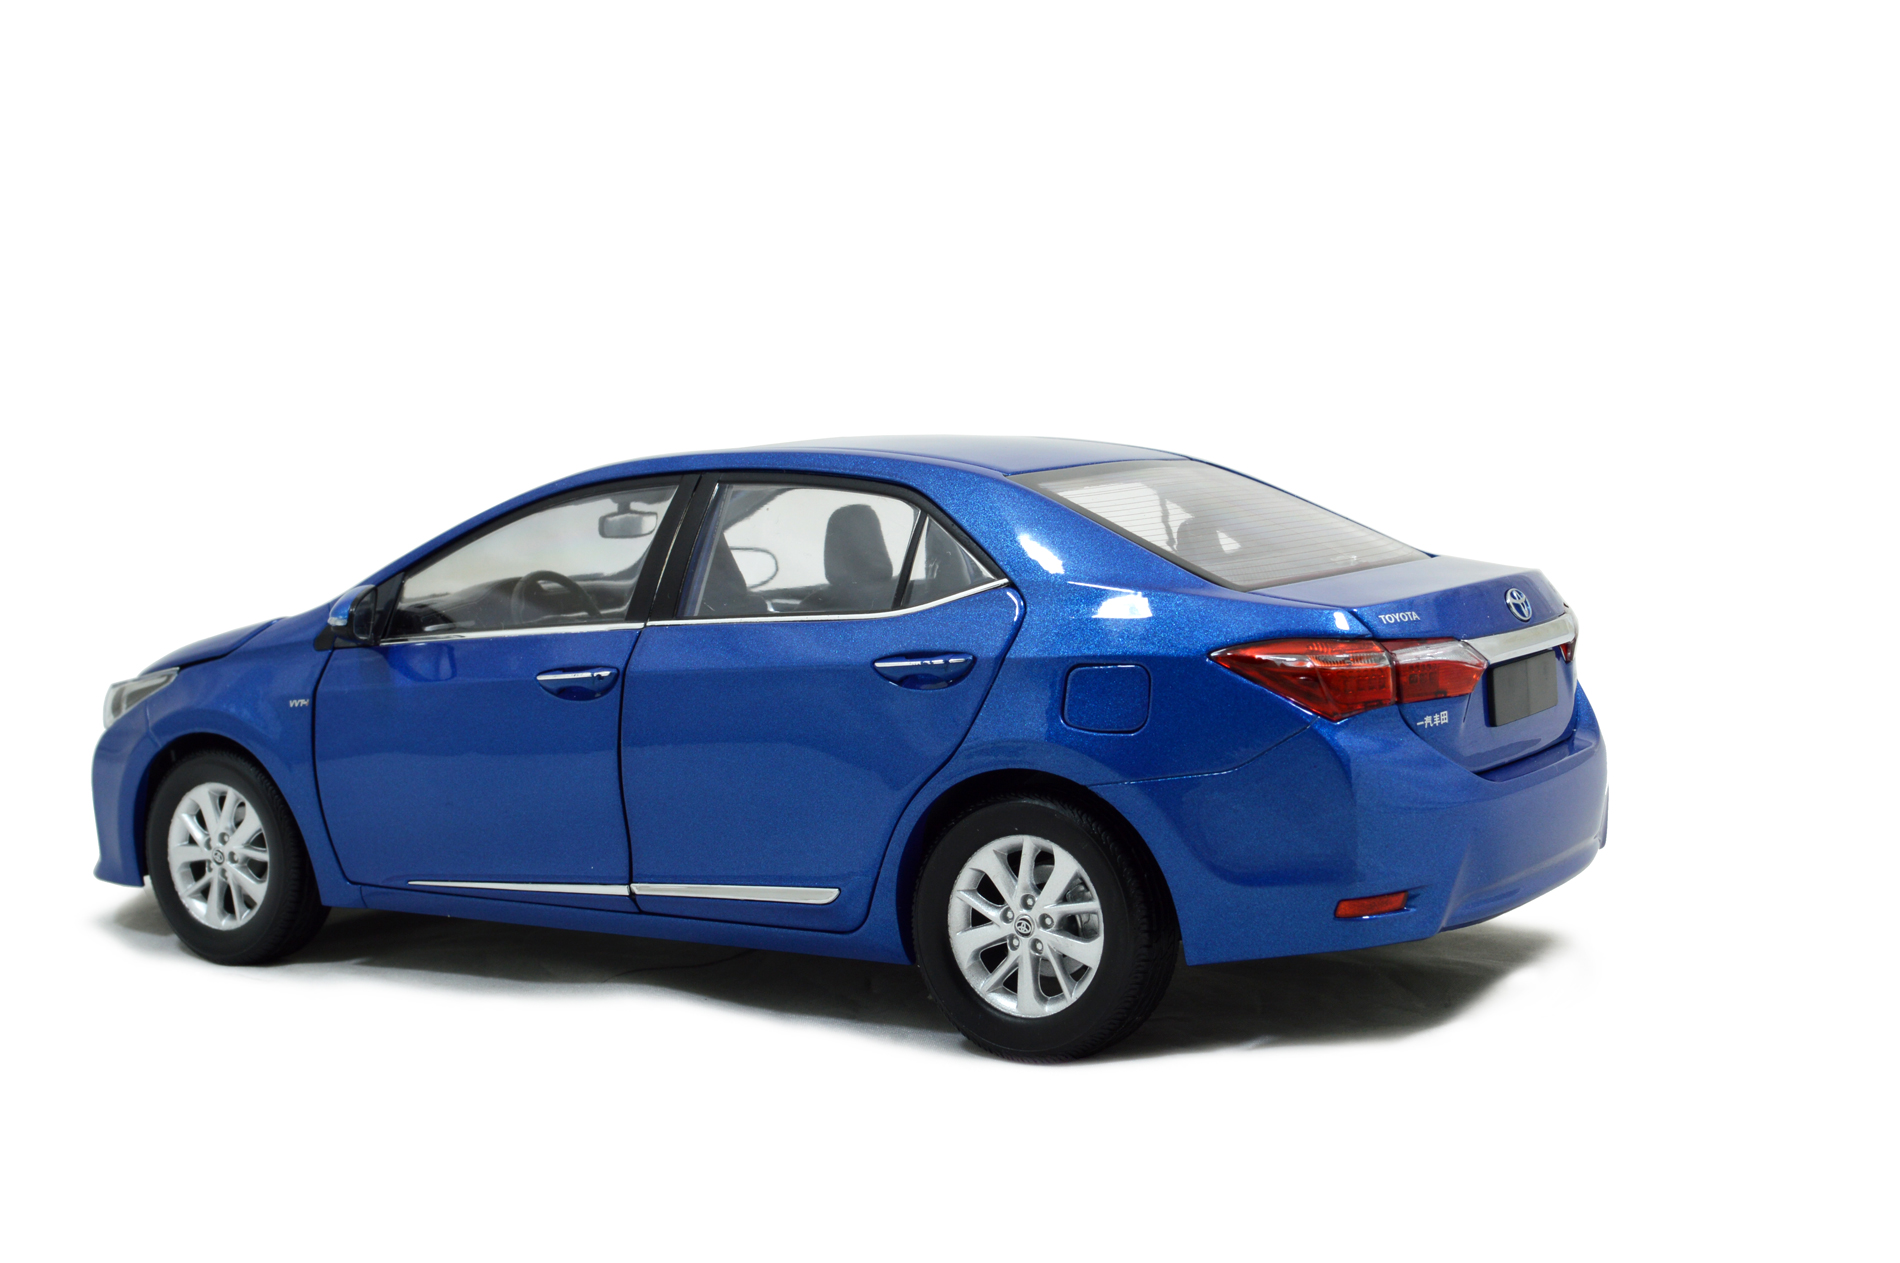 Toyota Corolla 2014 1/18 Scale Diecast Model Car Wholesale ...